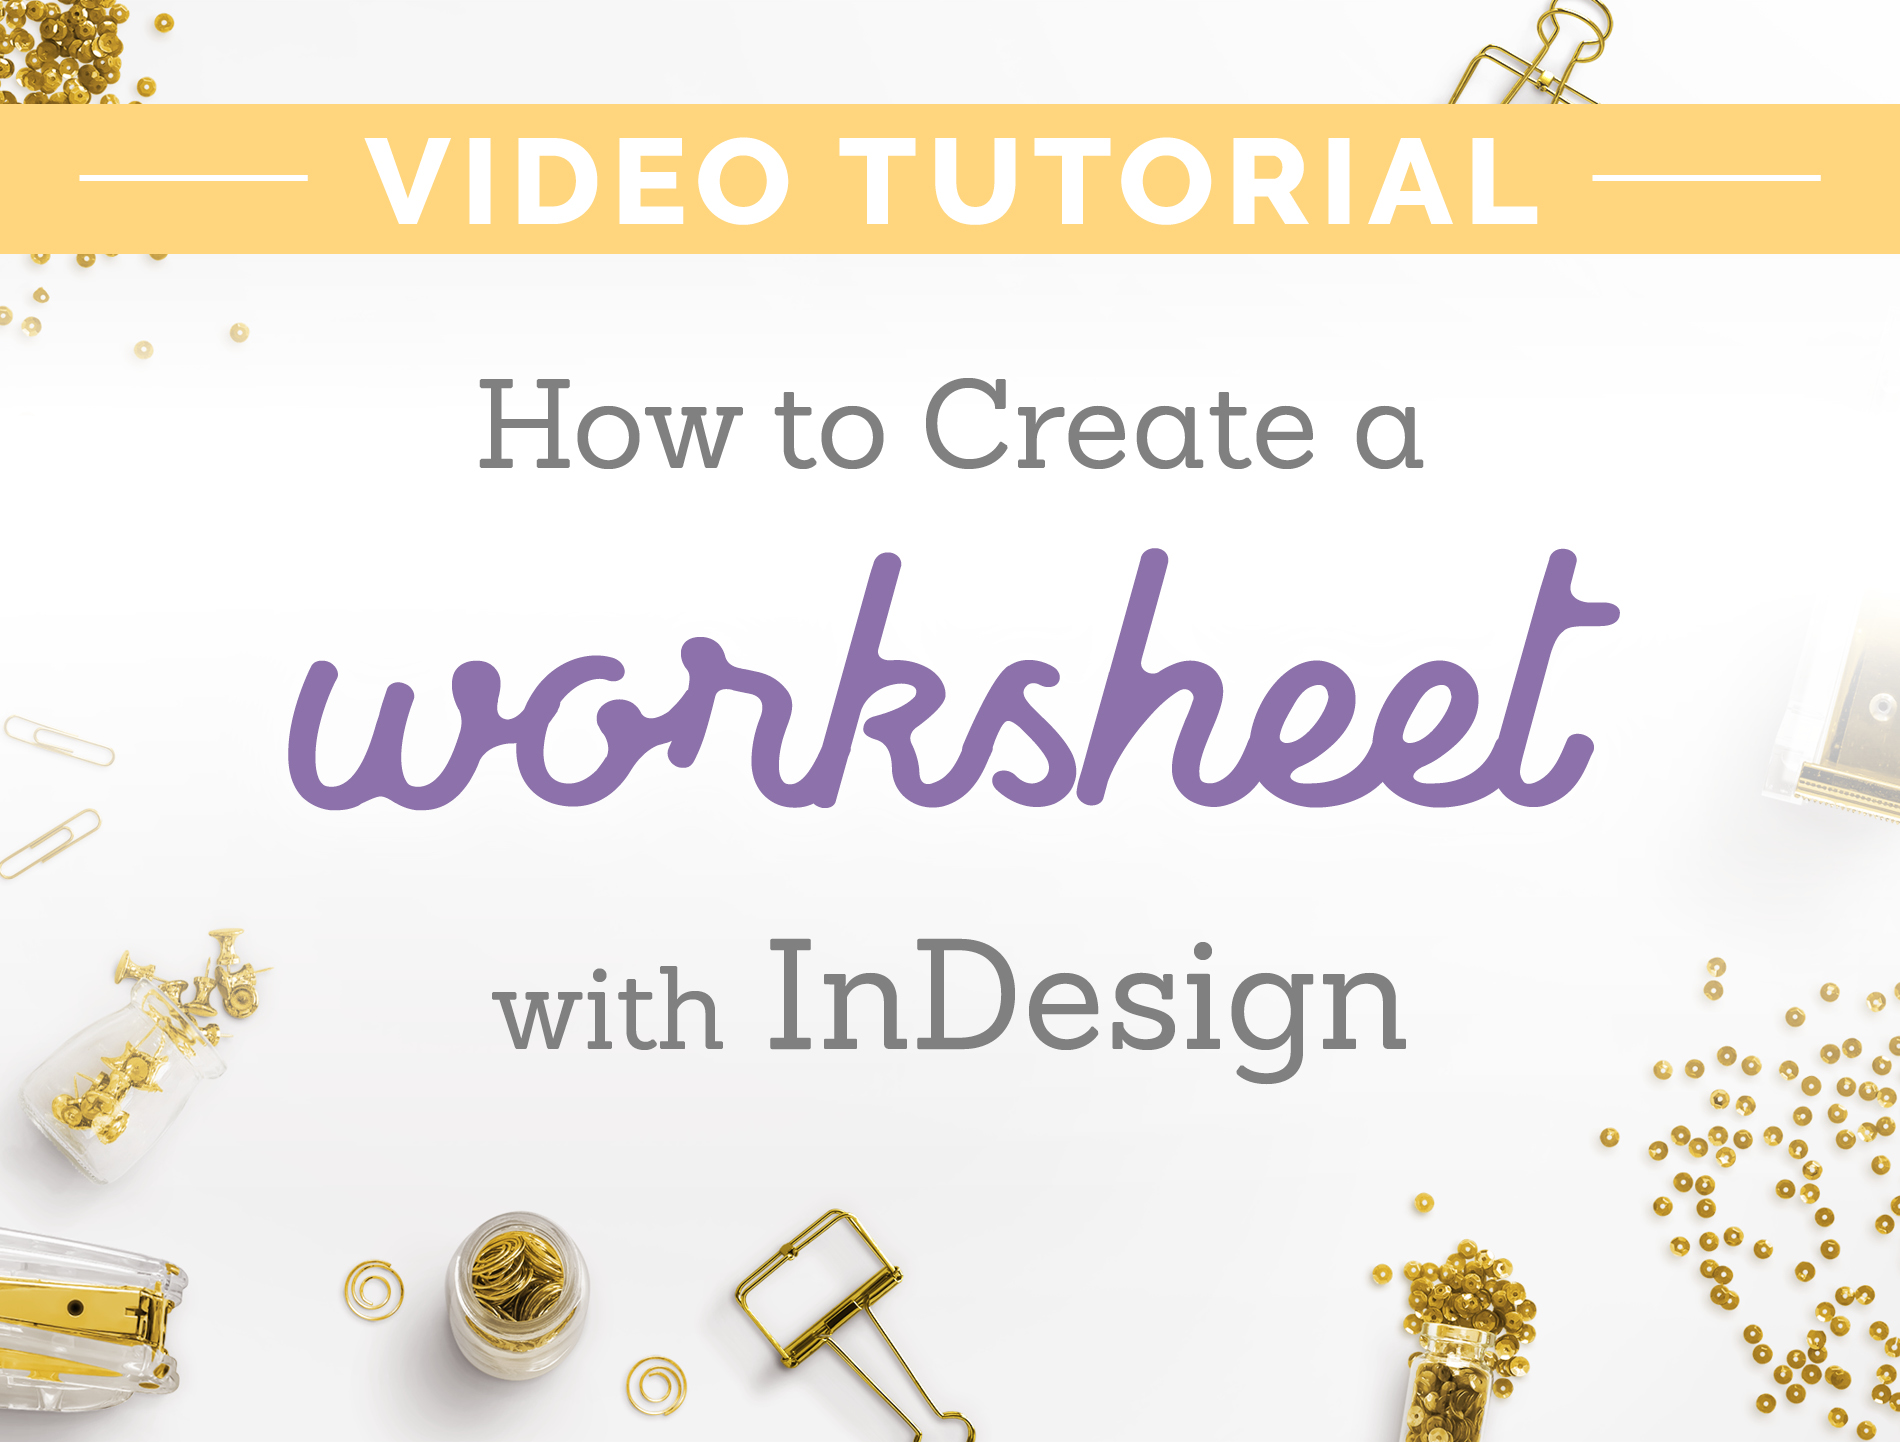 how to create a worksheet with indesign